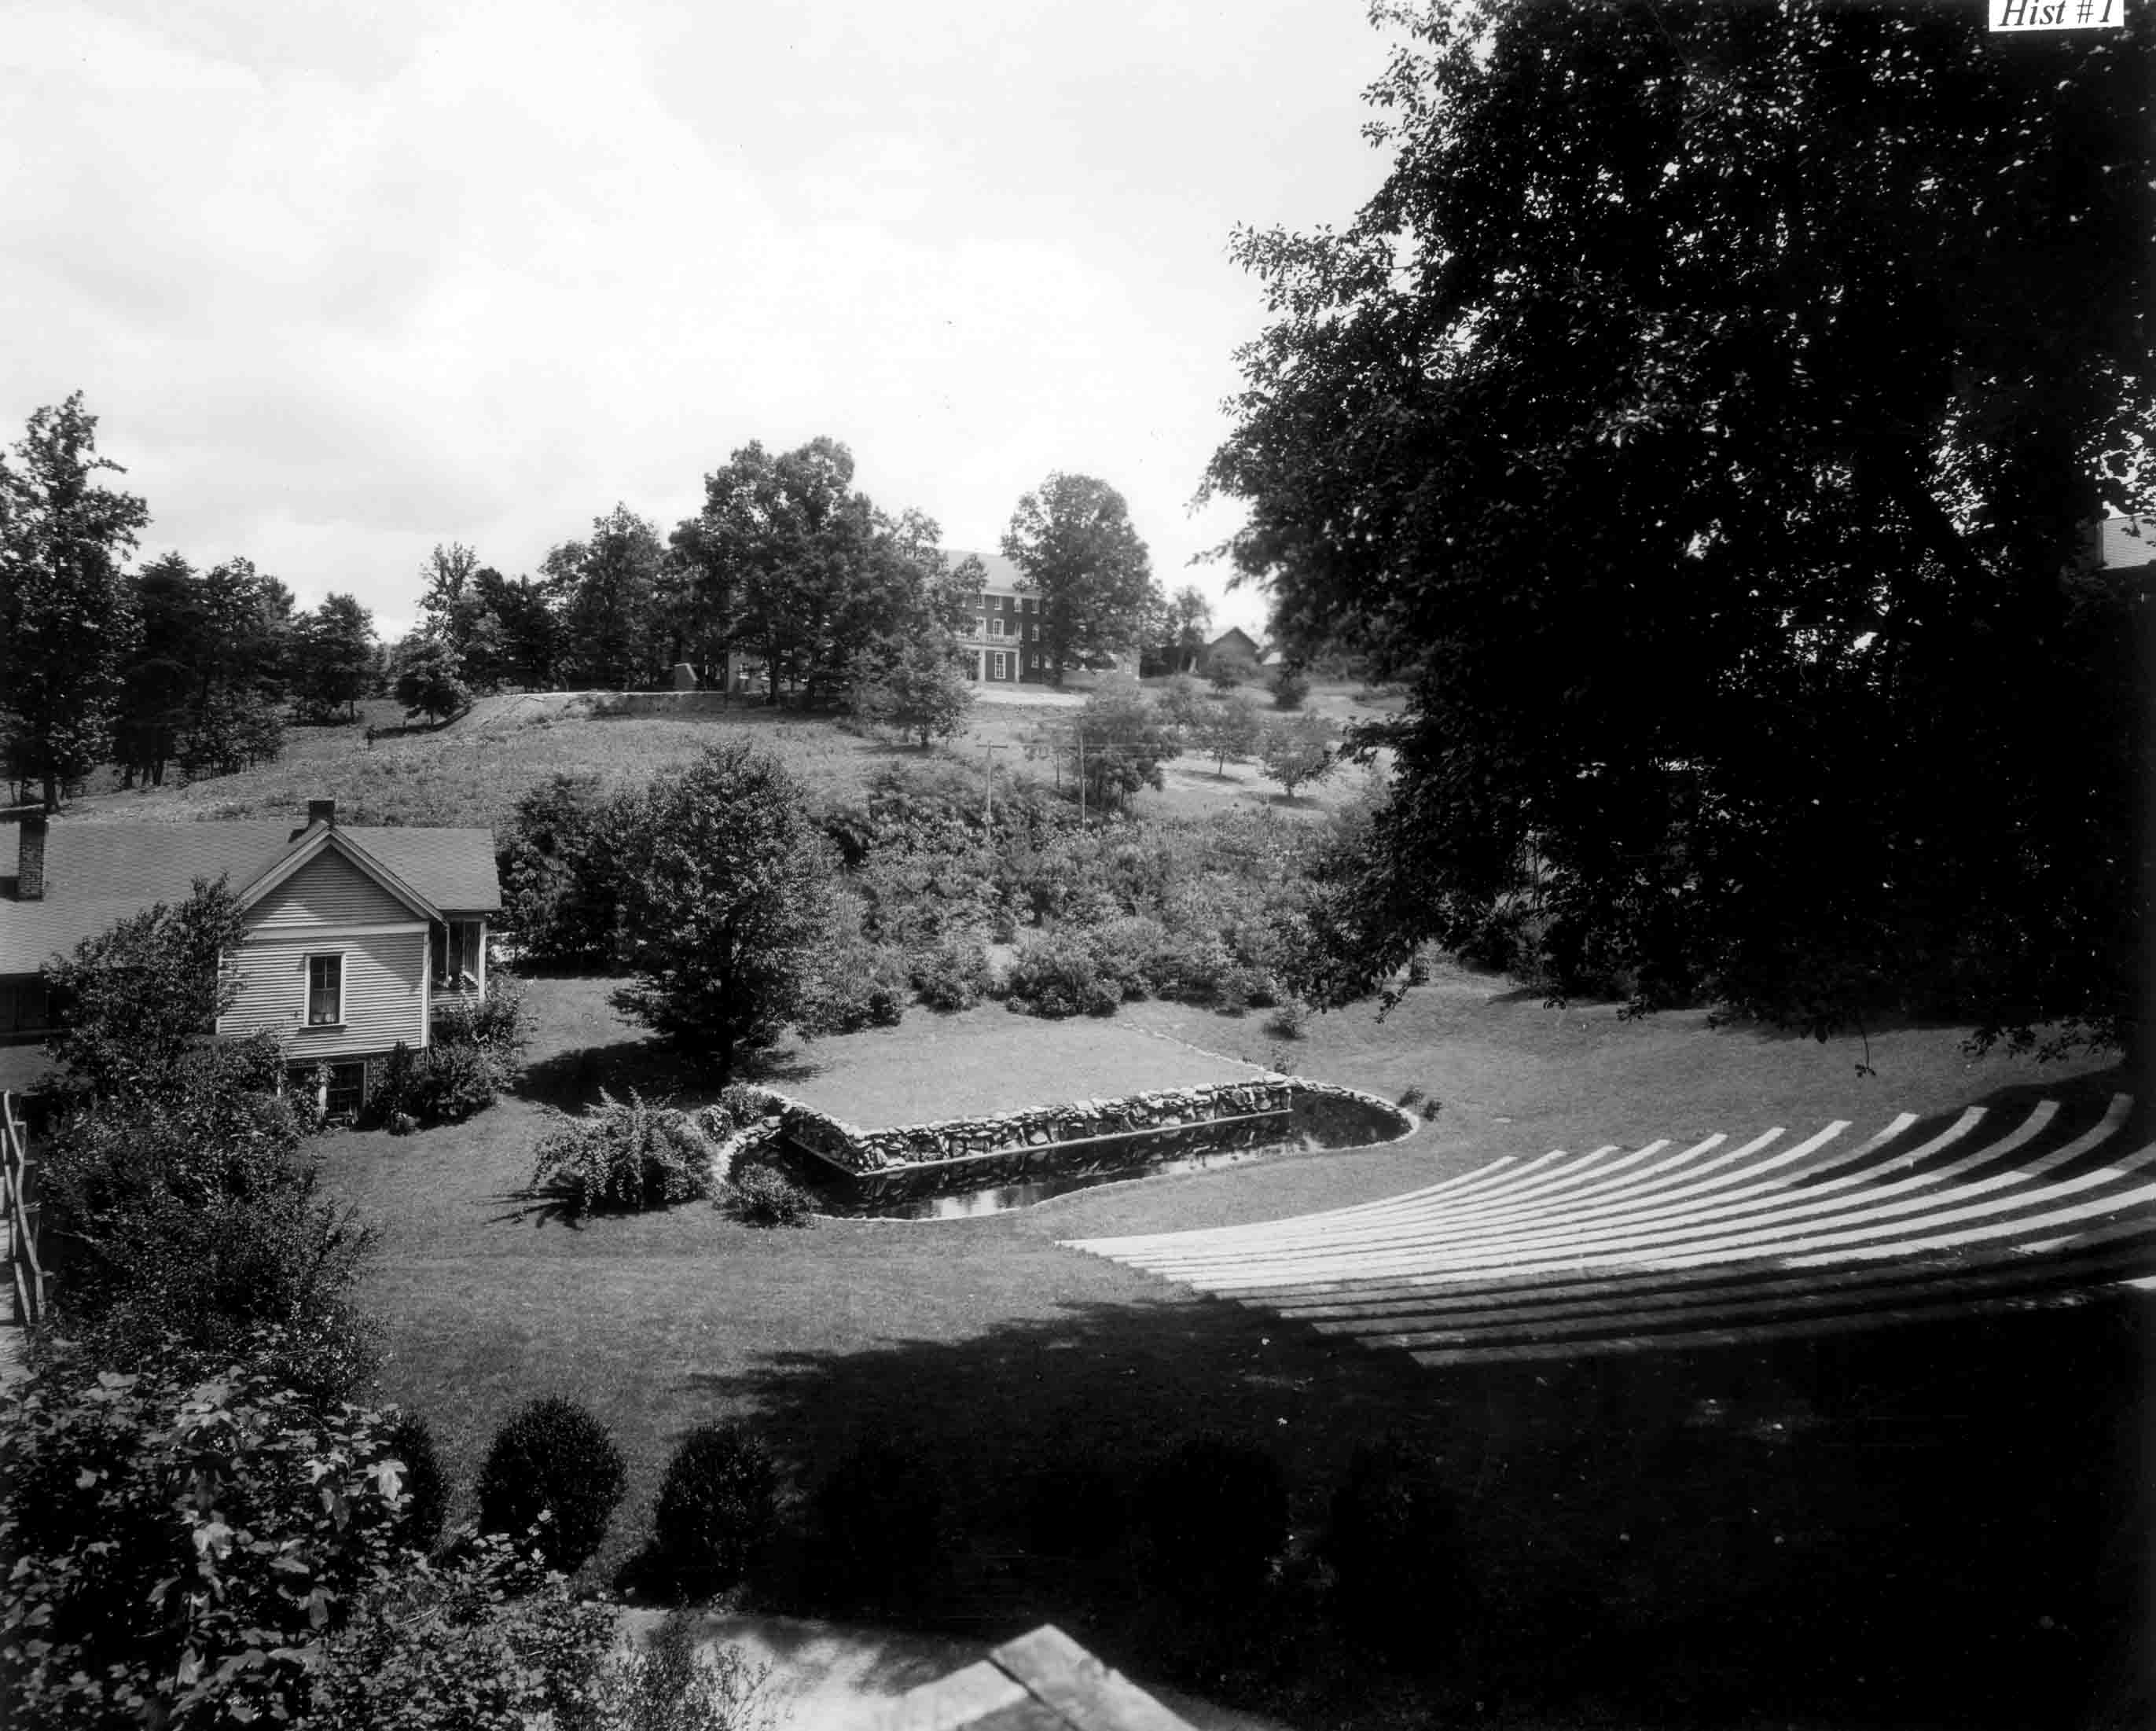 Amphitheater and Wood Cottage. The wood cottage is no longer standing on campus.